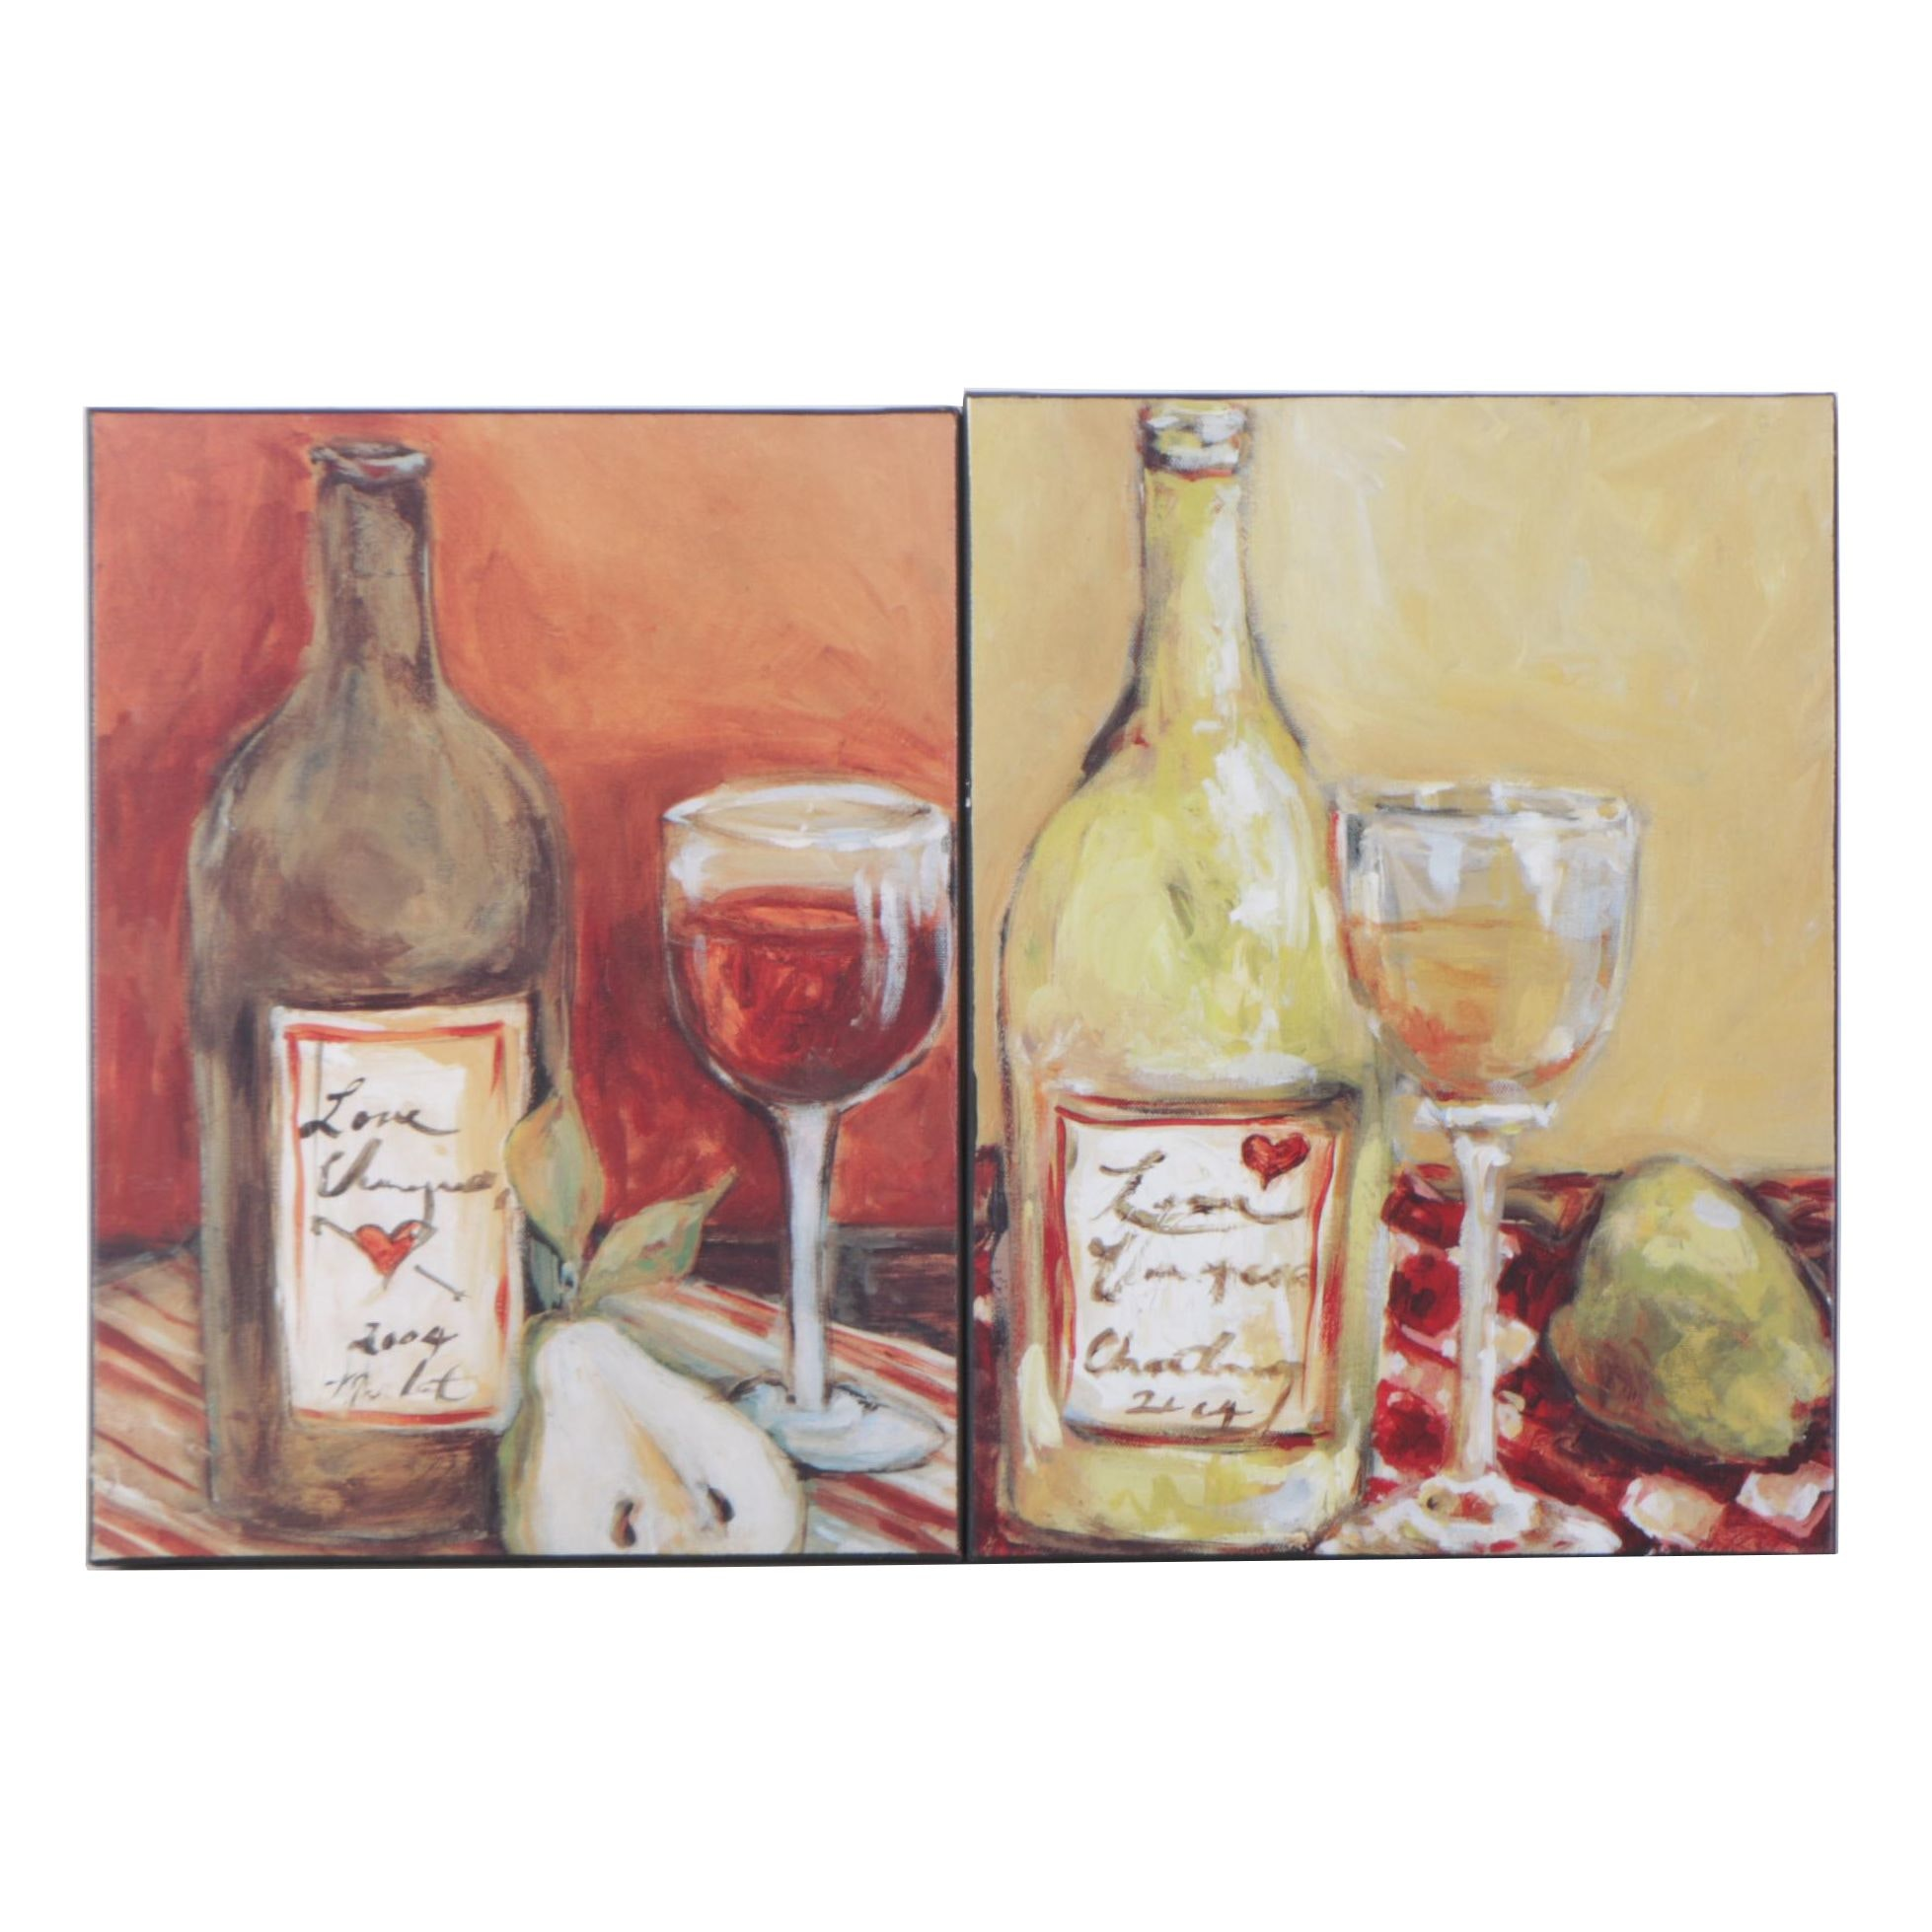 Pair of Wine Themed Offset Lithographs on Canvas